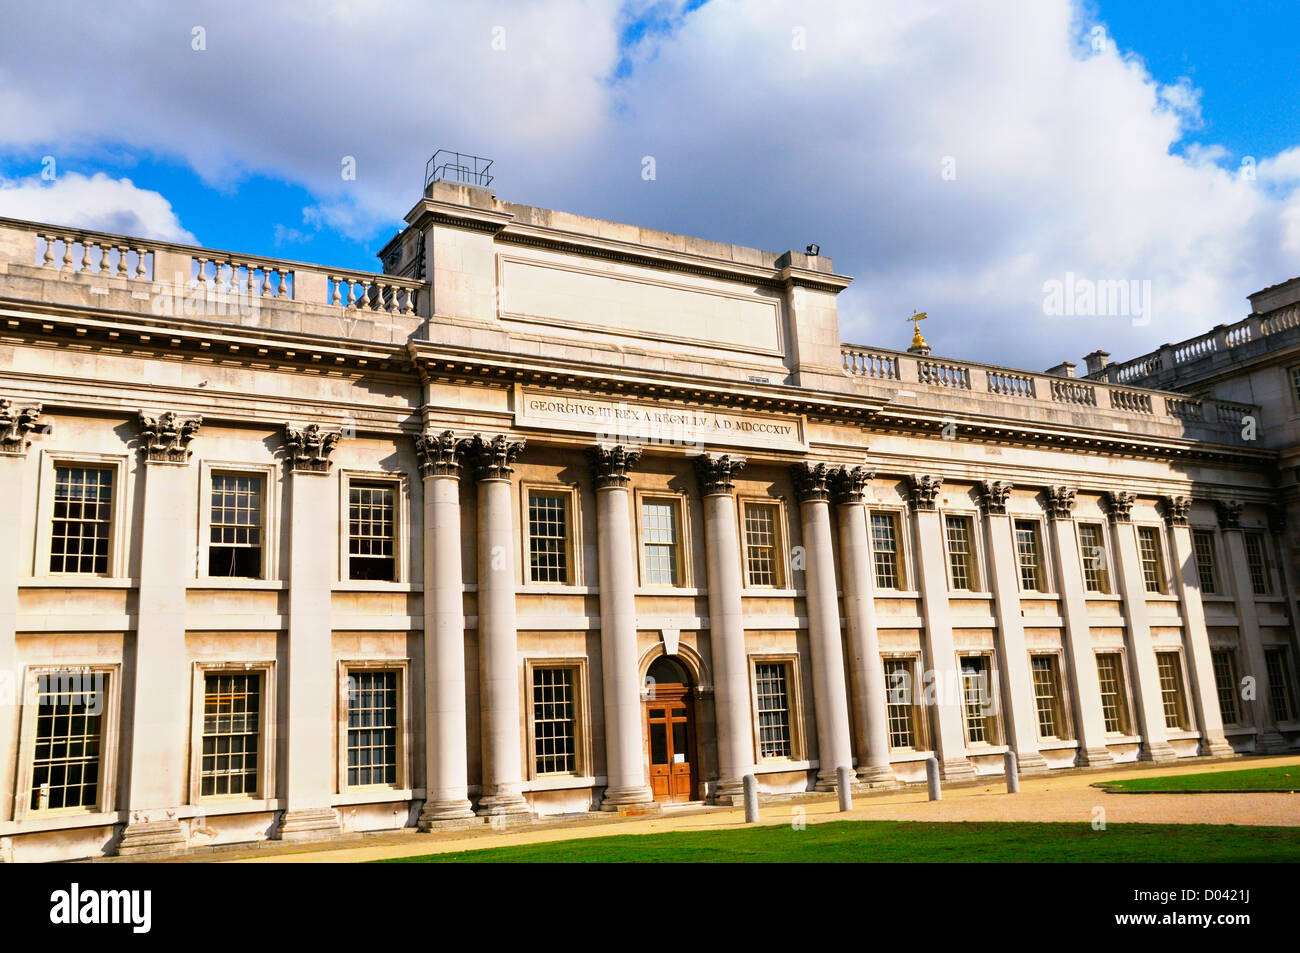 Trinity College of Music, Admiral's House, King Charles Court, Old Royal Naval College, Greenwich, London, UK - Stock Image